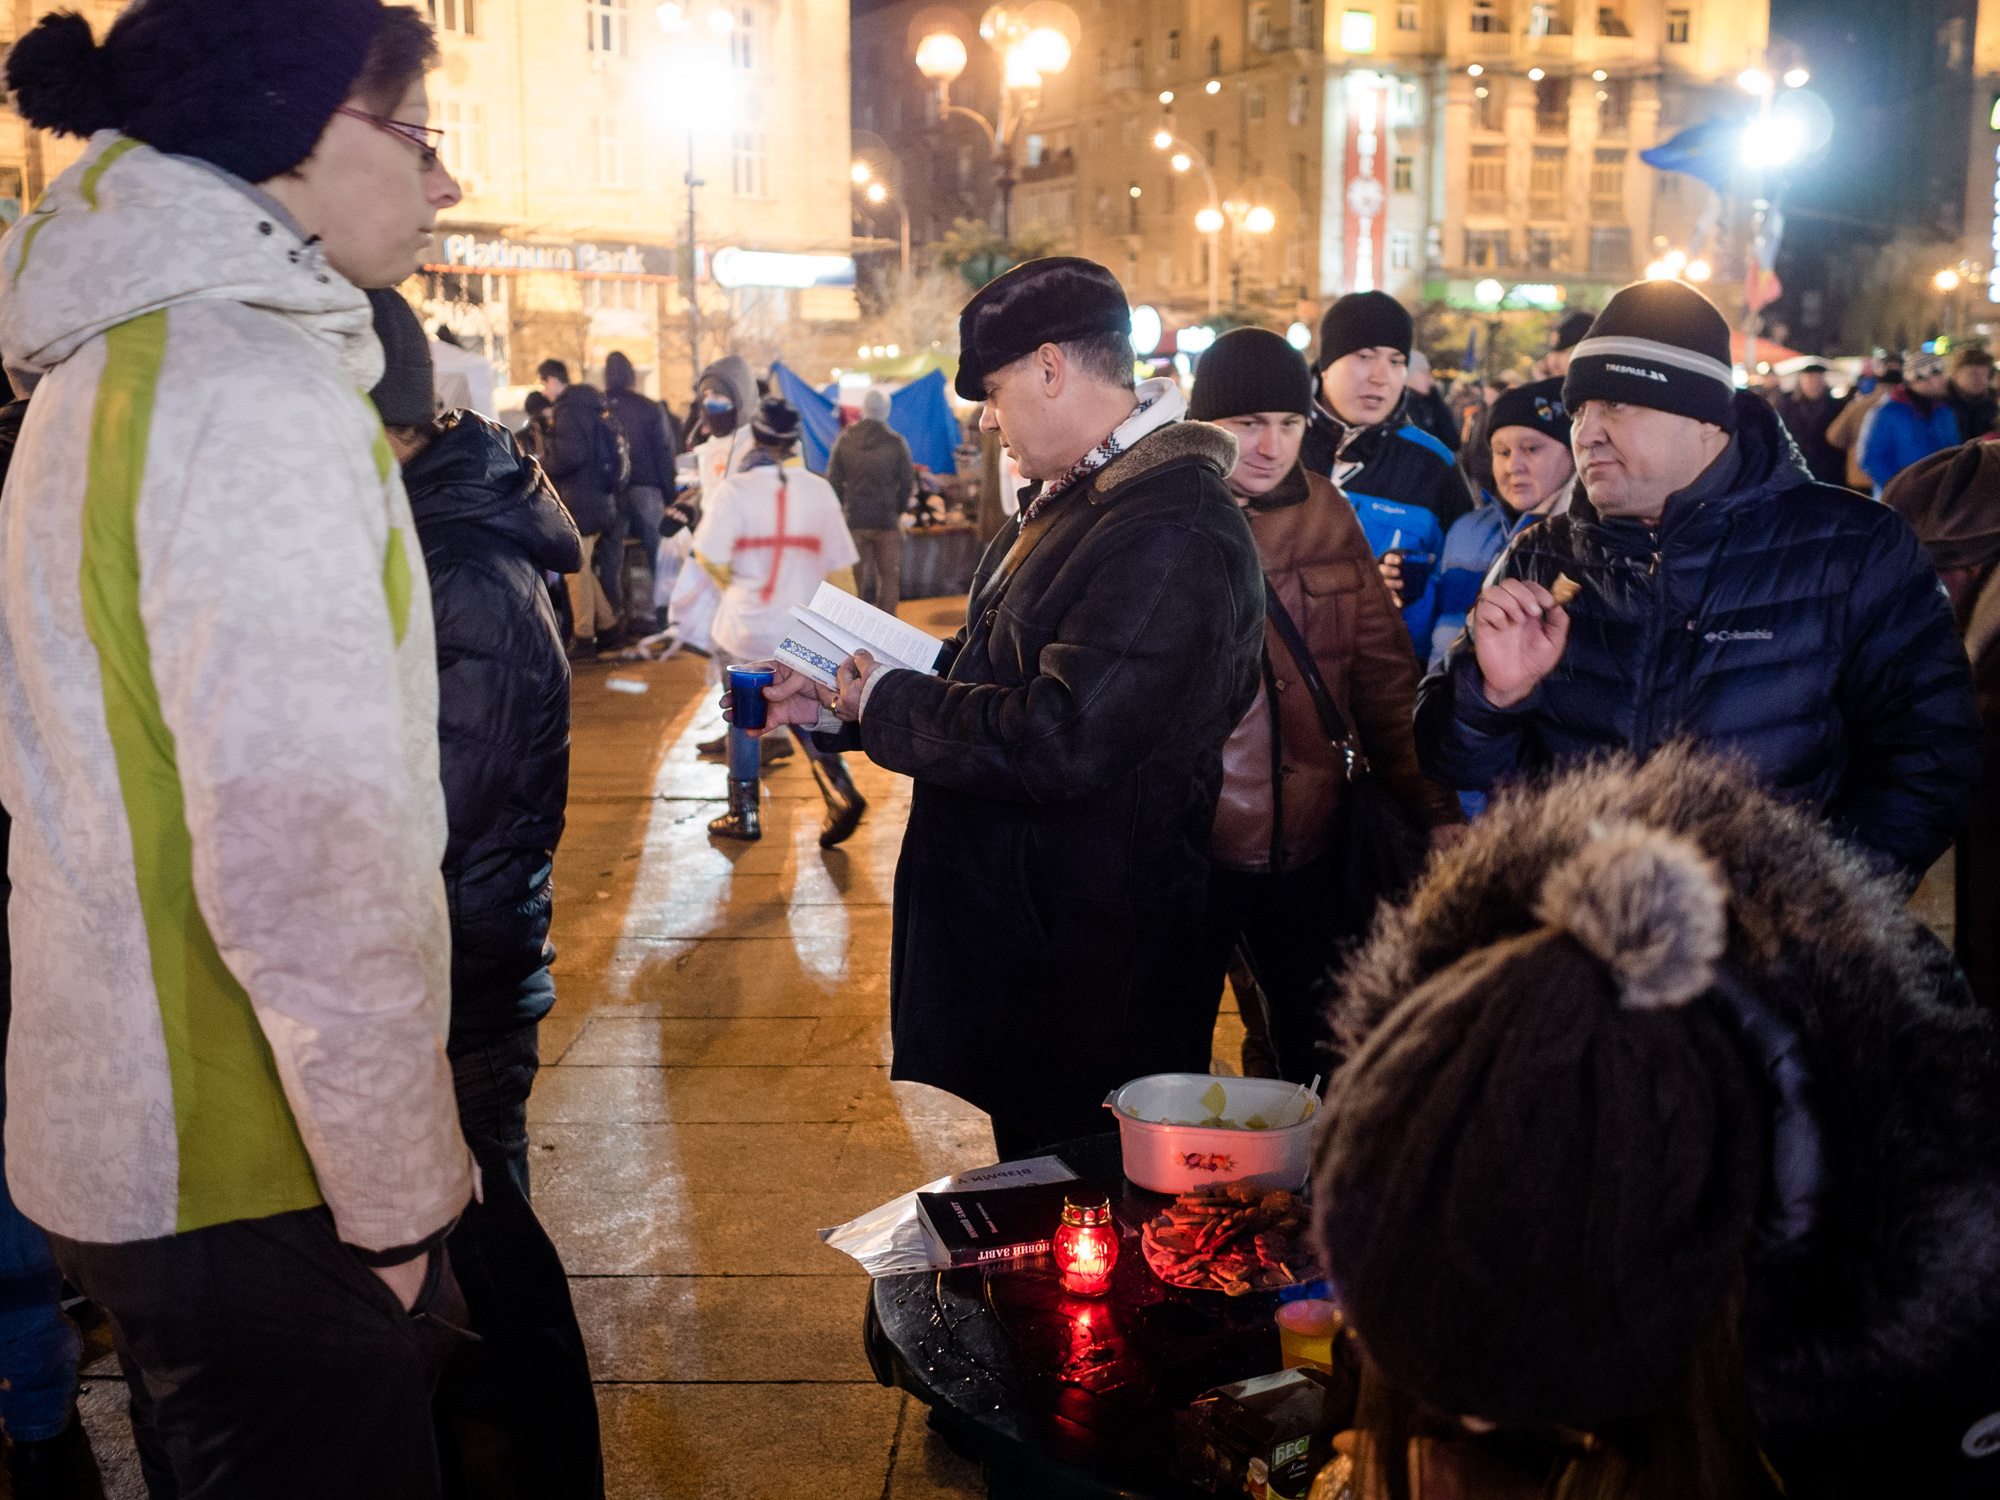 Ukrainians turn to Christ as protest continues